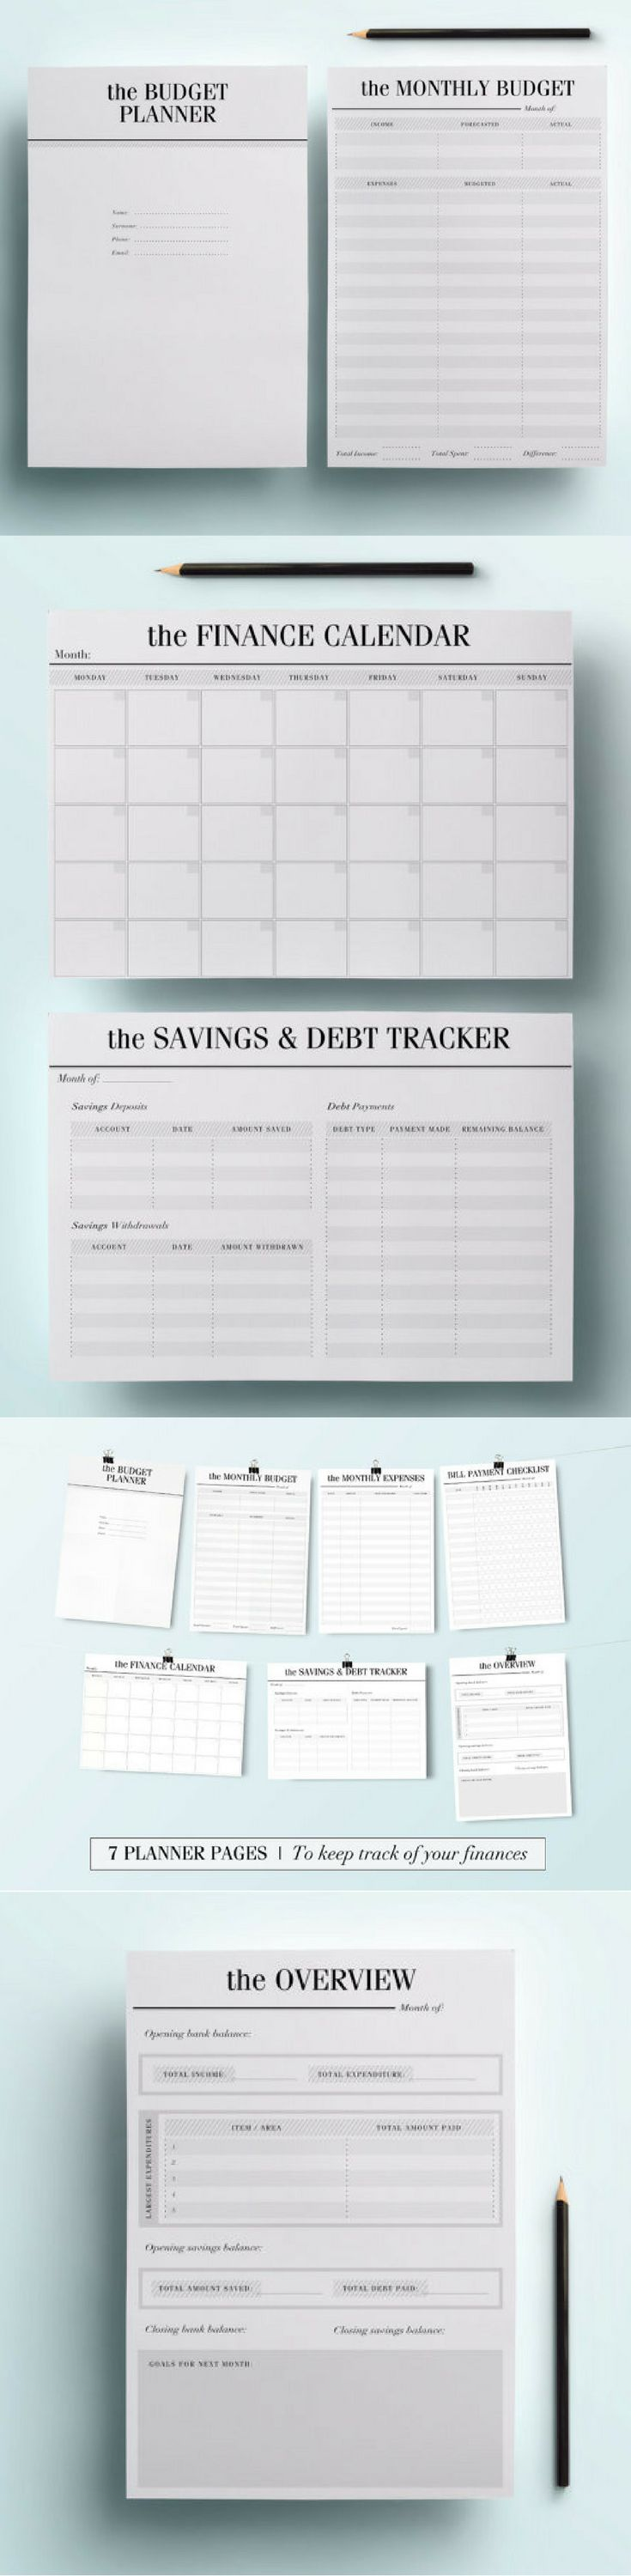 Best 25 financial plan template ideas on pinterest household best 25 financial plan template ideas on pinterest household budget worksheet budget spreadsheet and budget spreadsheet template robcynllc Image collections